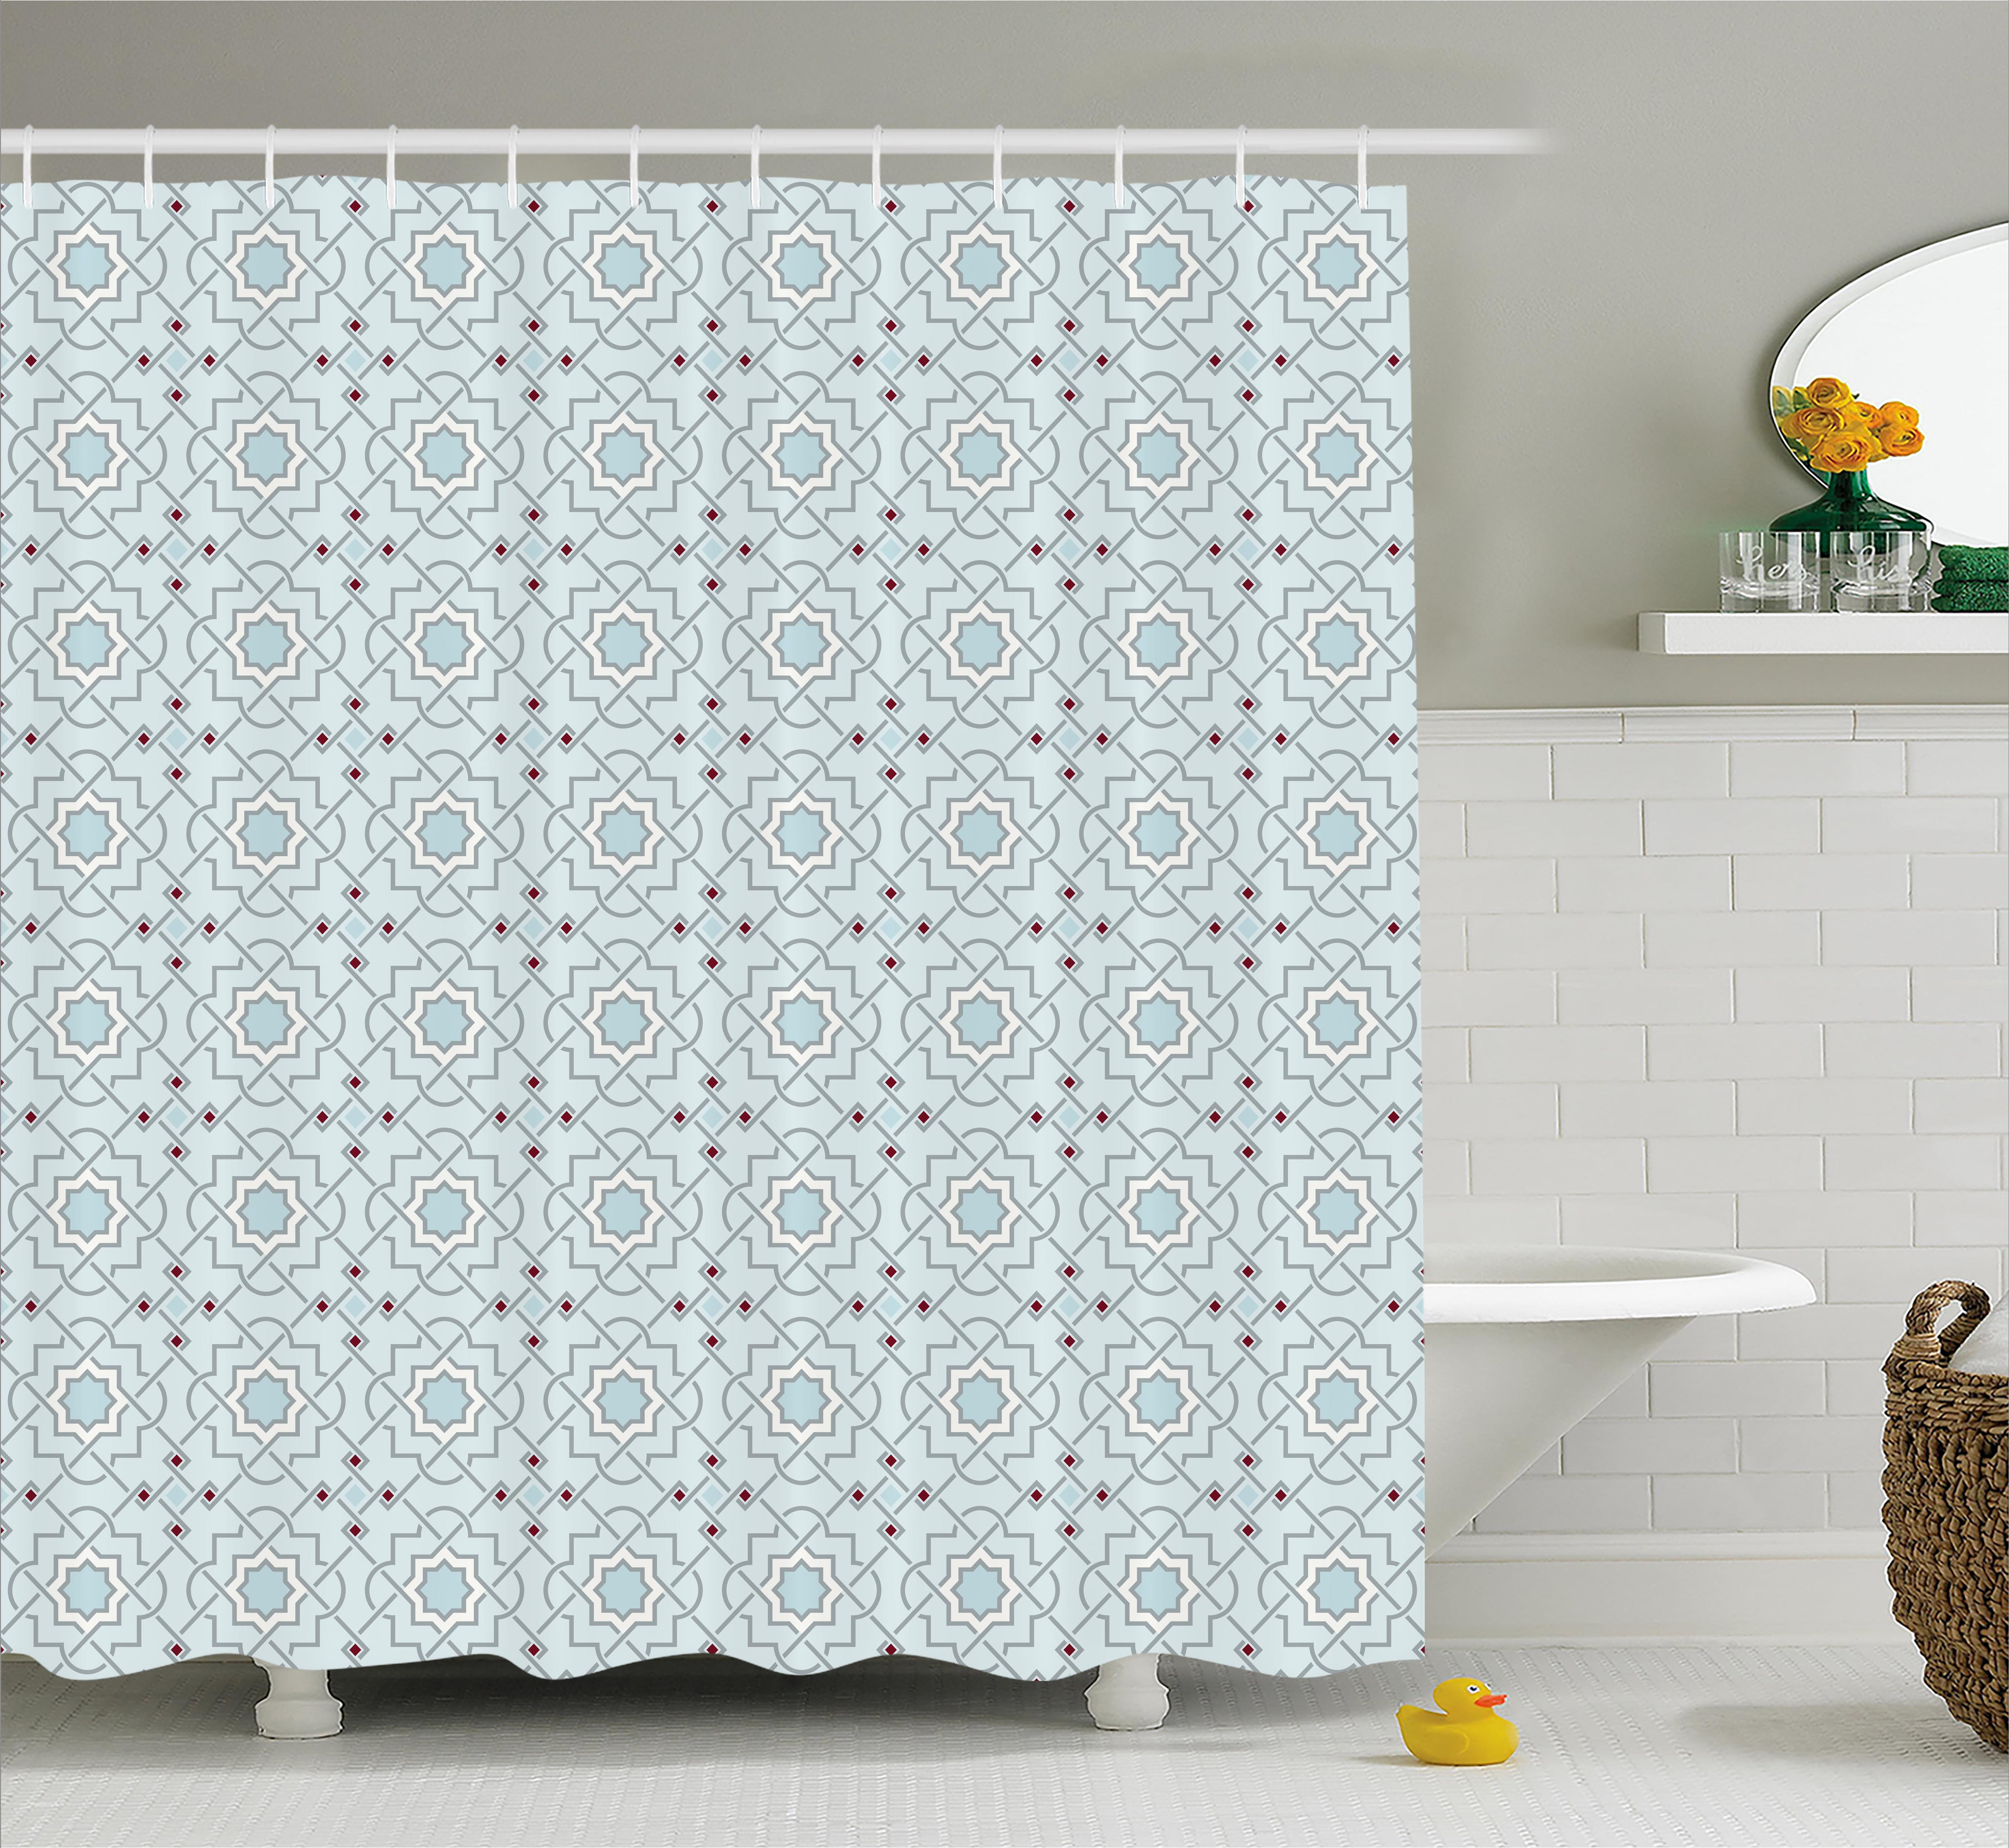 Asian Yoga Pattern Shower Curtain Fabric Decor Set With